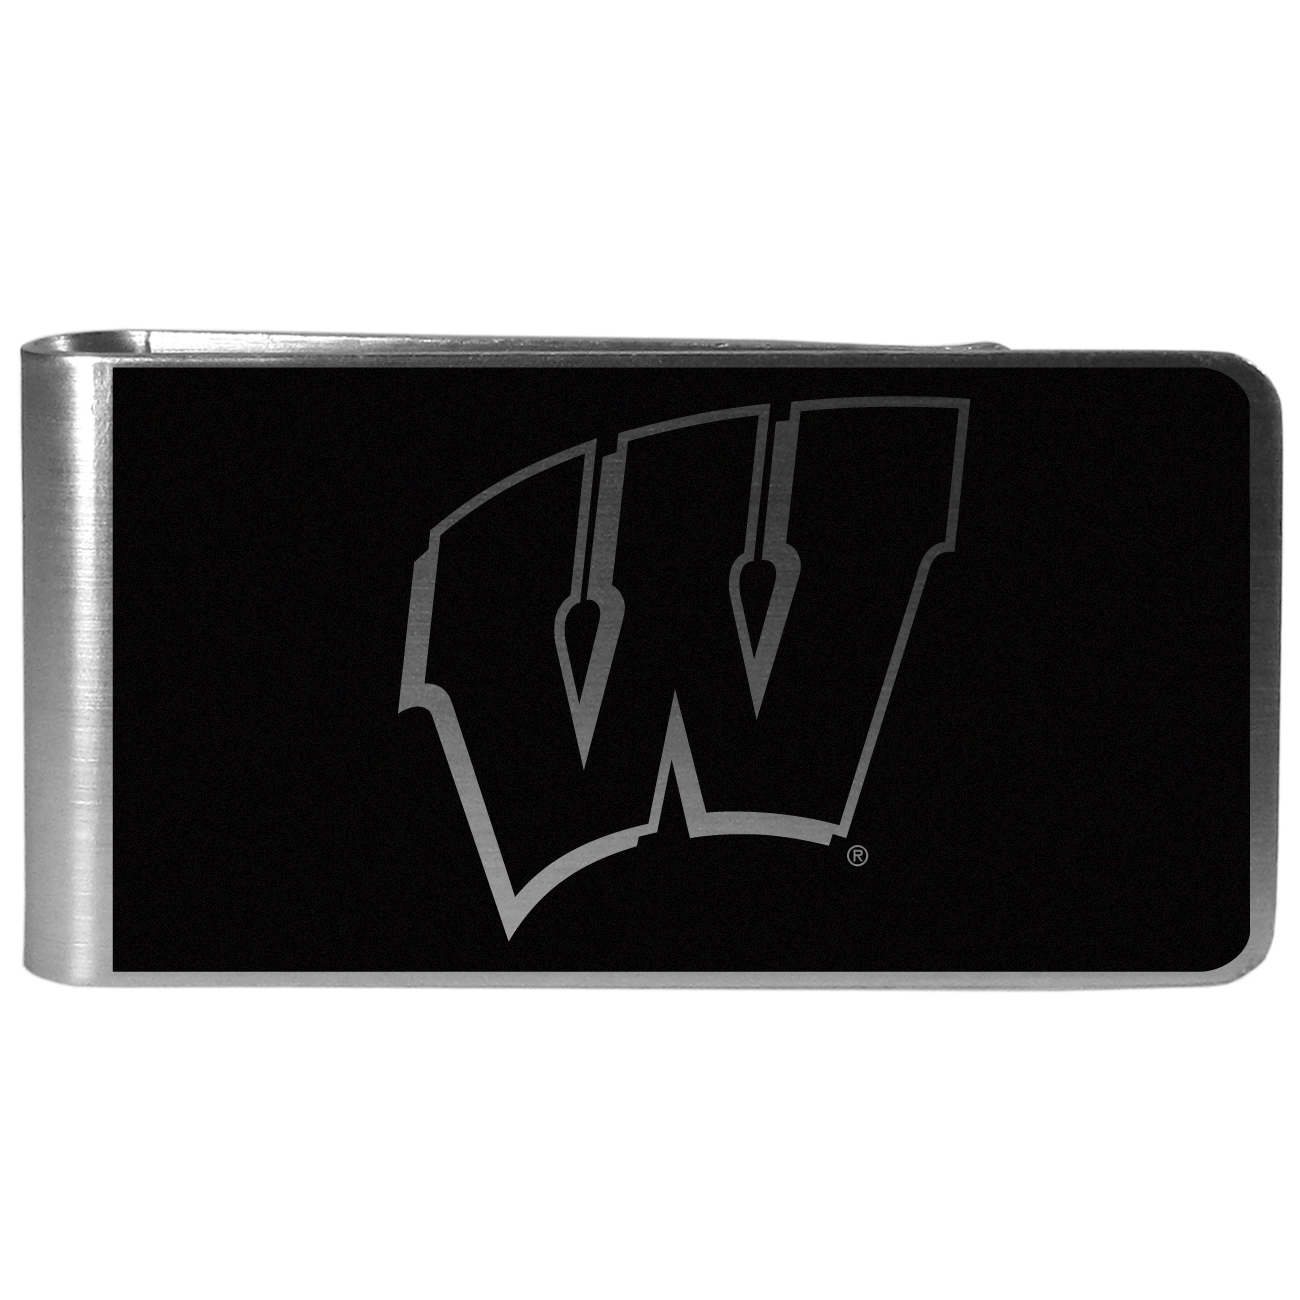 Wisconsin Badgers Black and Steel Money Clip - Our monochromatic steel money clips have a classic style and superior quality. The strong, steel clip has a black overlay of the Wisconsin Badgers logo over the brushed metal finish creating a stylish men's fashion accessory that would make any fan proud.